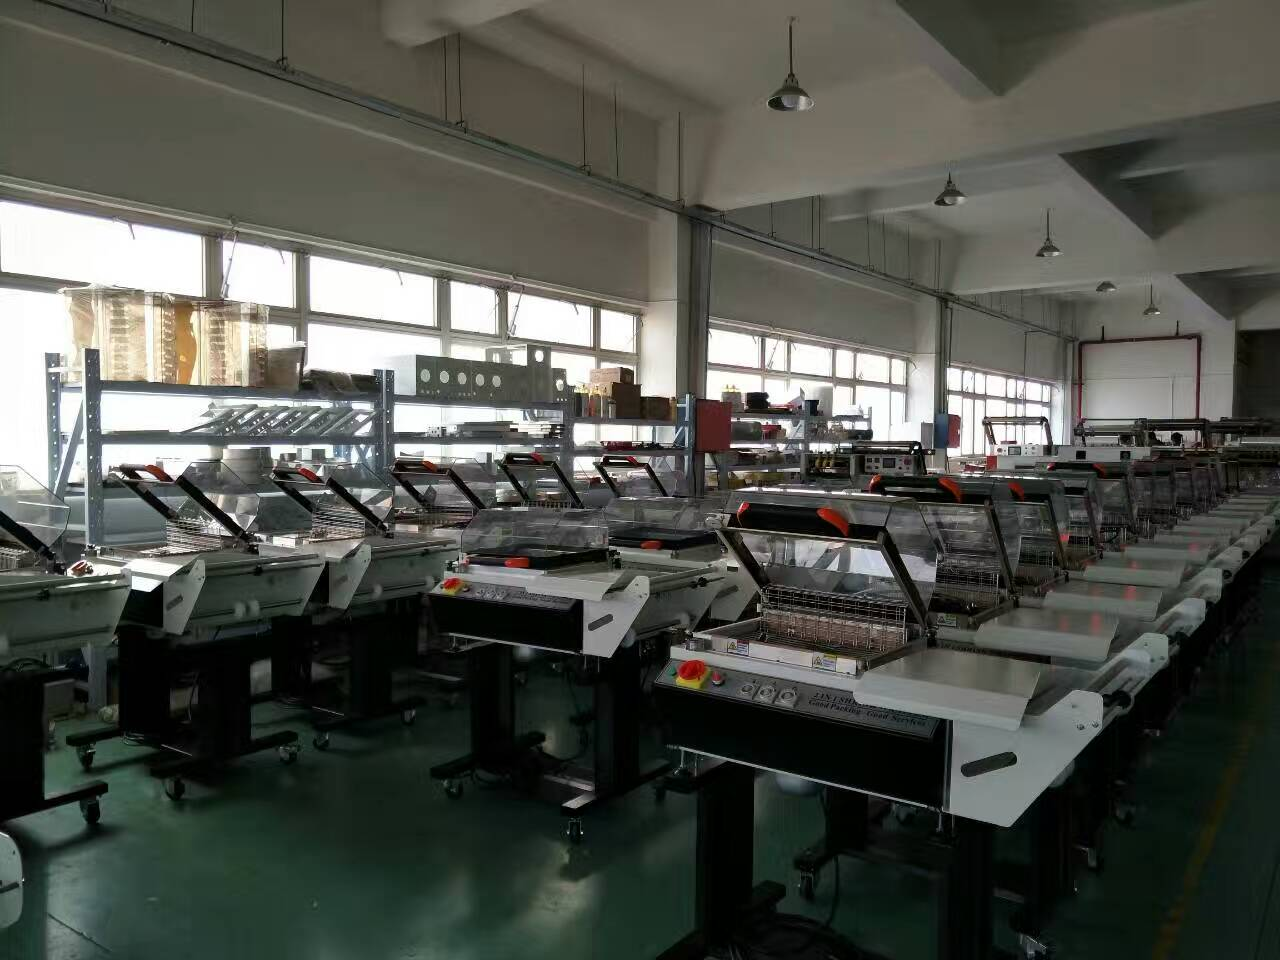 Jiangxi professional shrink machine repair call integrity-based Shanghai Guhao Packaging Machinery Supply